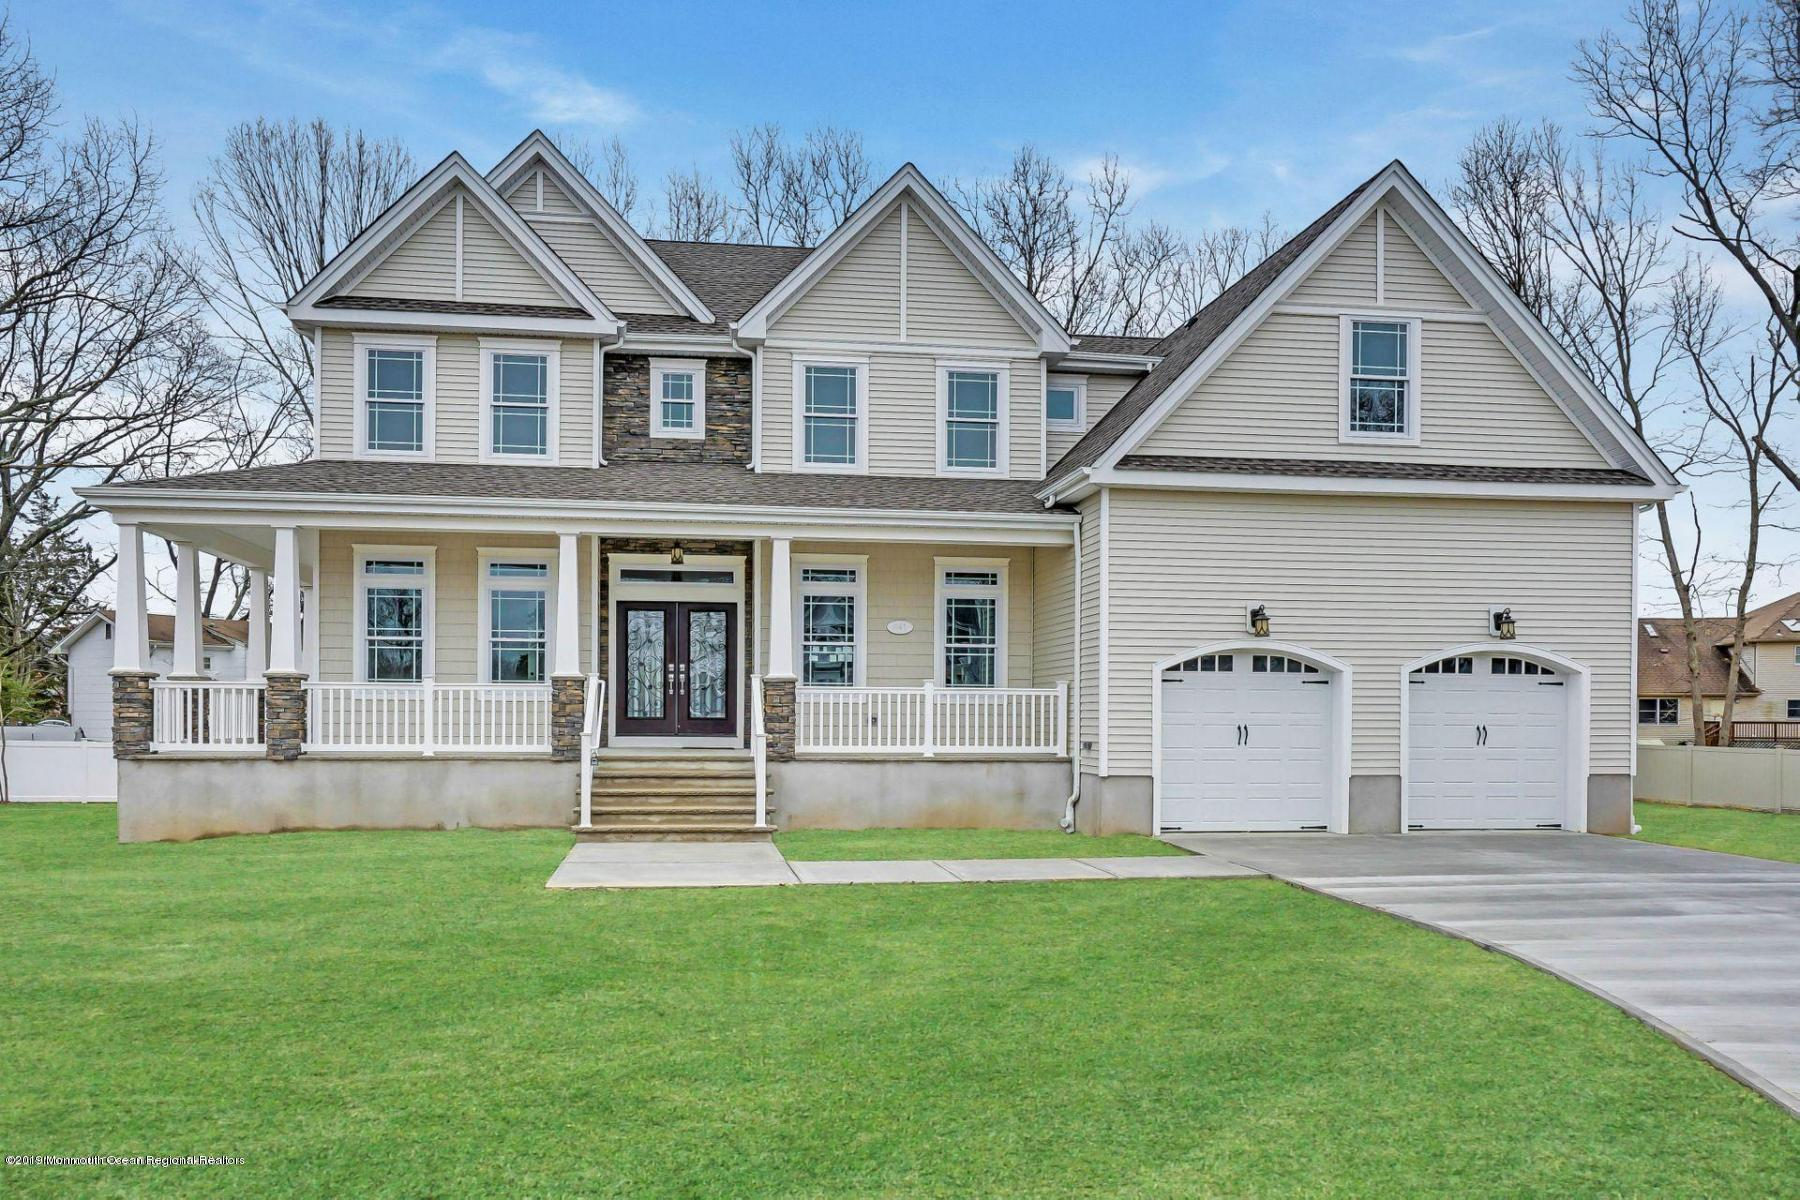 842 Ethan Court, Toms River, New Jersey